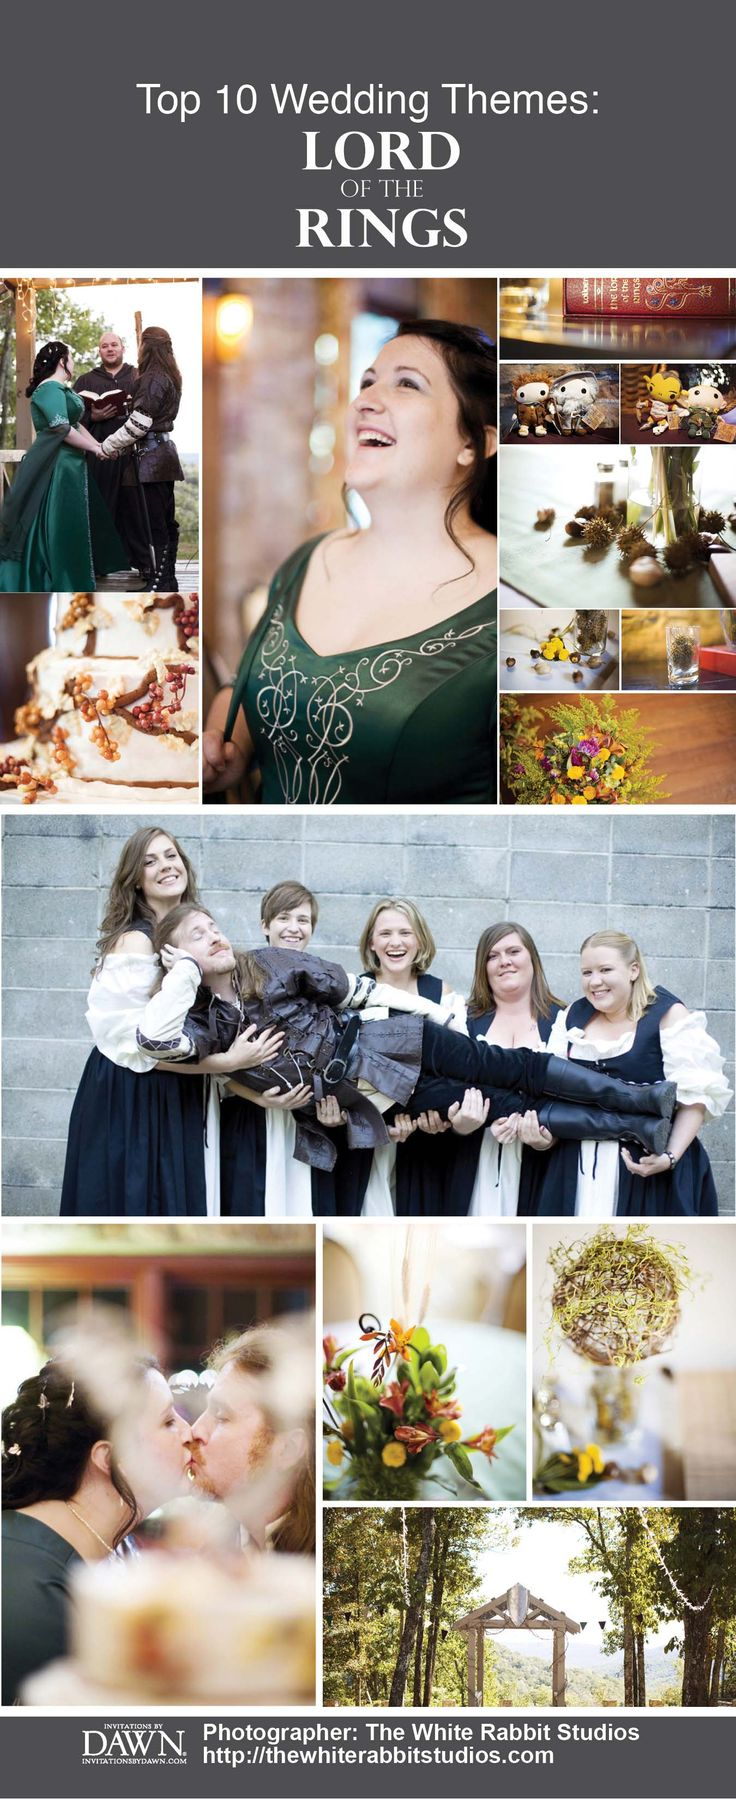 Top 10 Wedding Themes Hobbit WeddingLotr